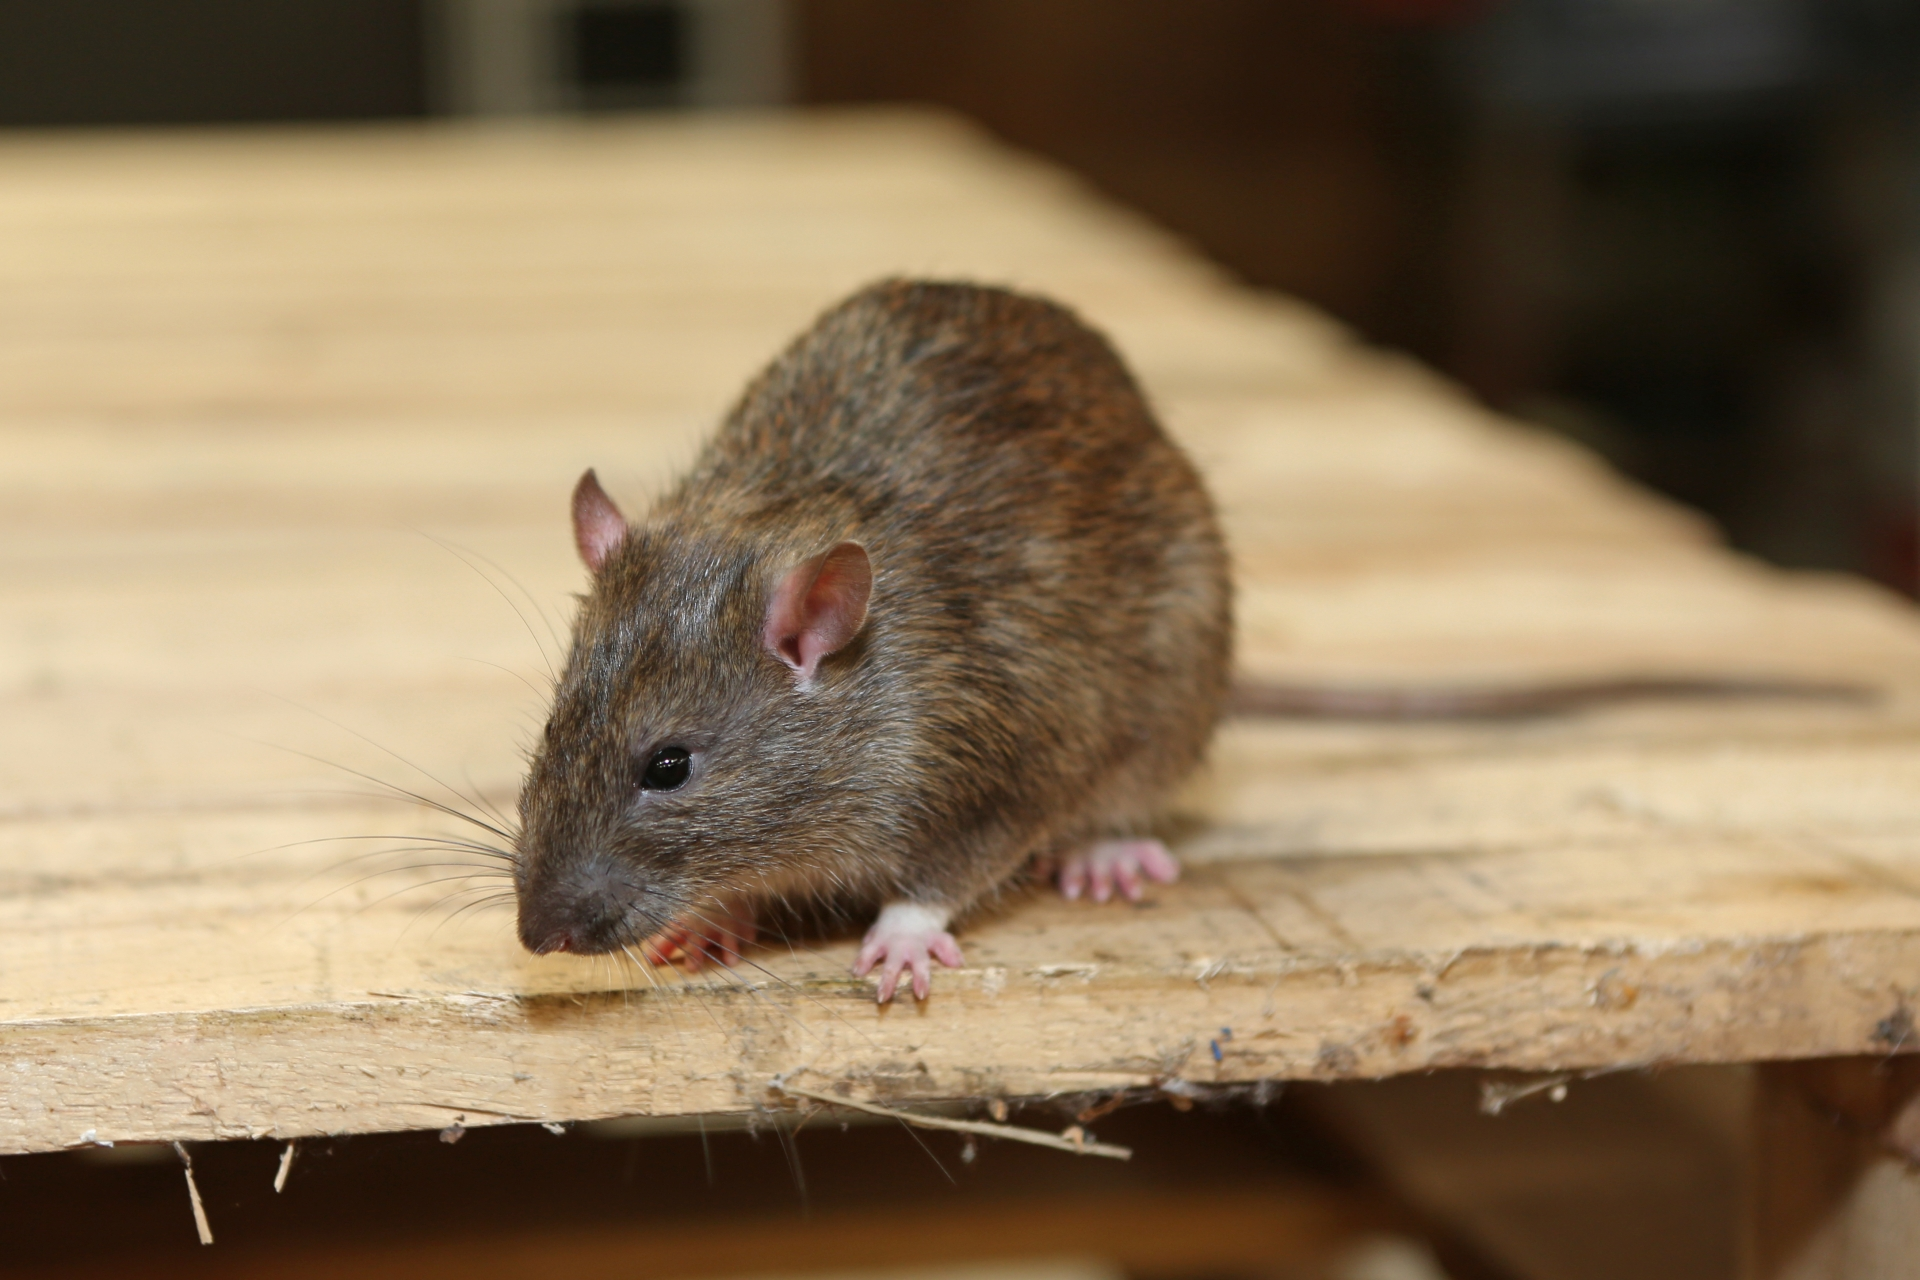 Rat Infestation, Pest Control in Hackney, Homerton, E9. Call Now 020 8166 9746